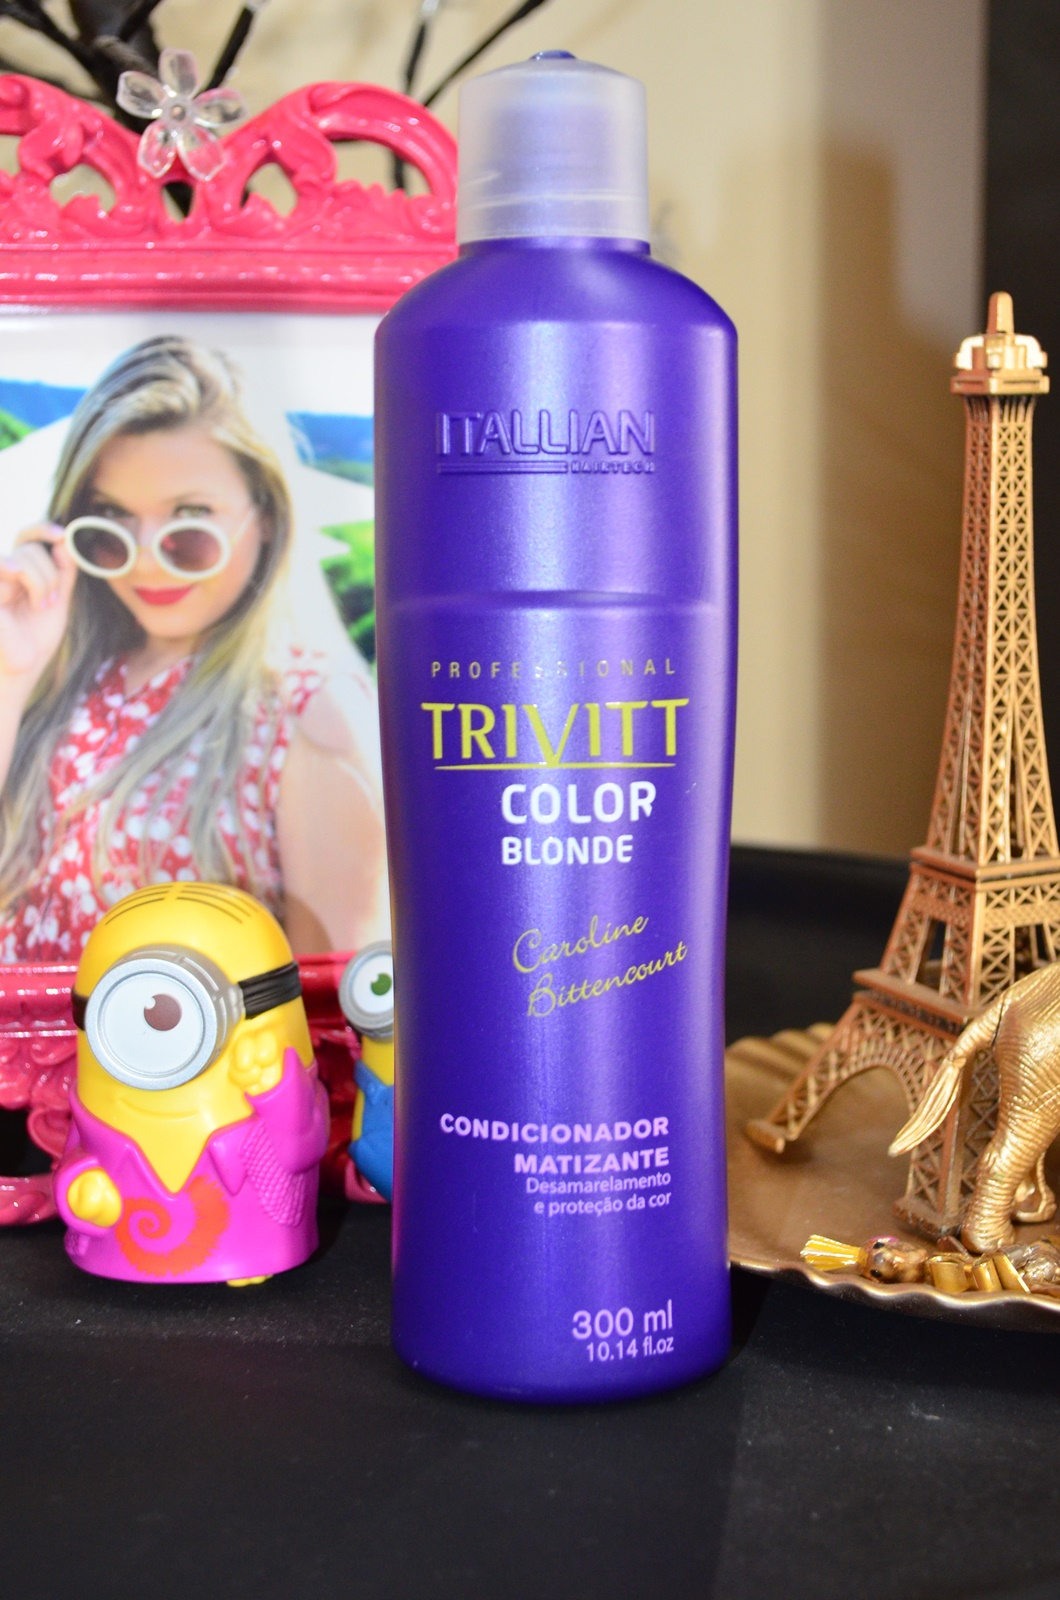 Shampoo e condicionador TRIVITT color blond - itallian hairtech 3